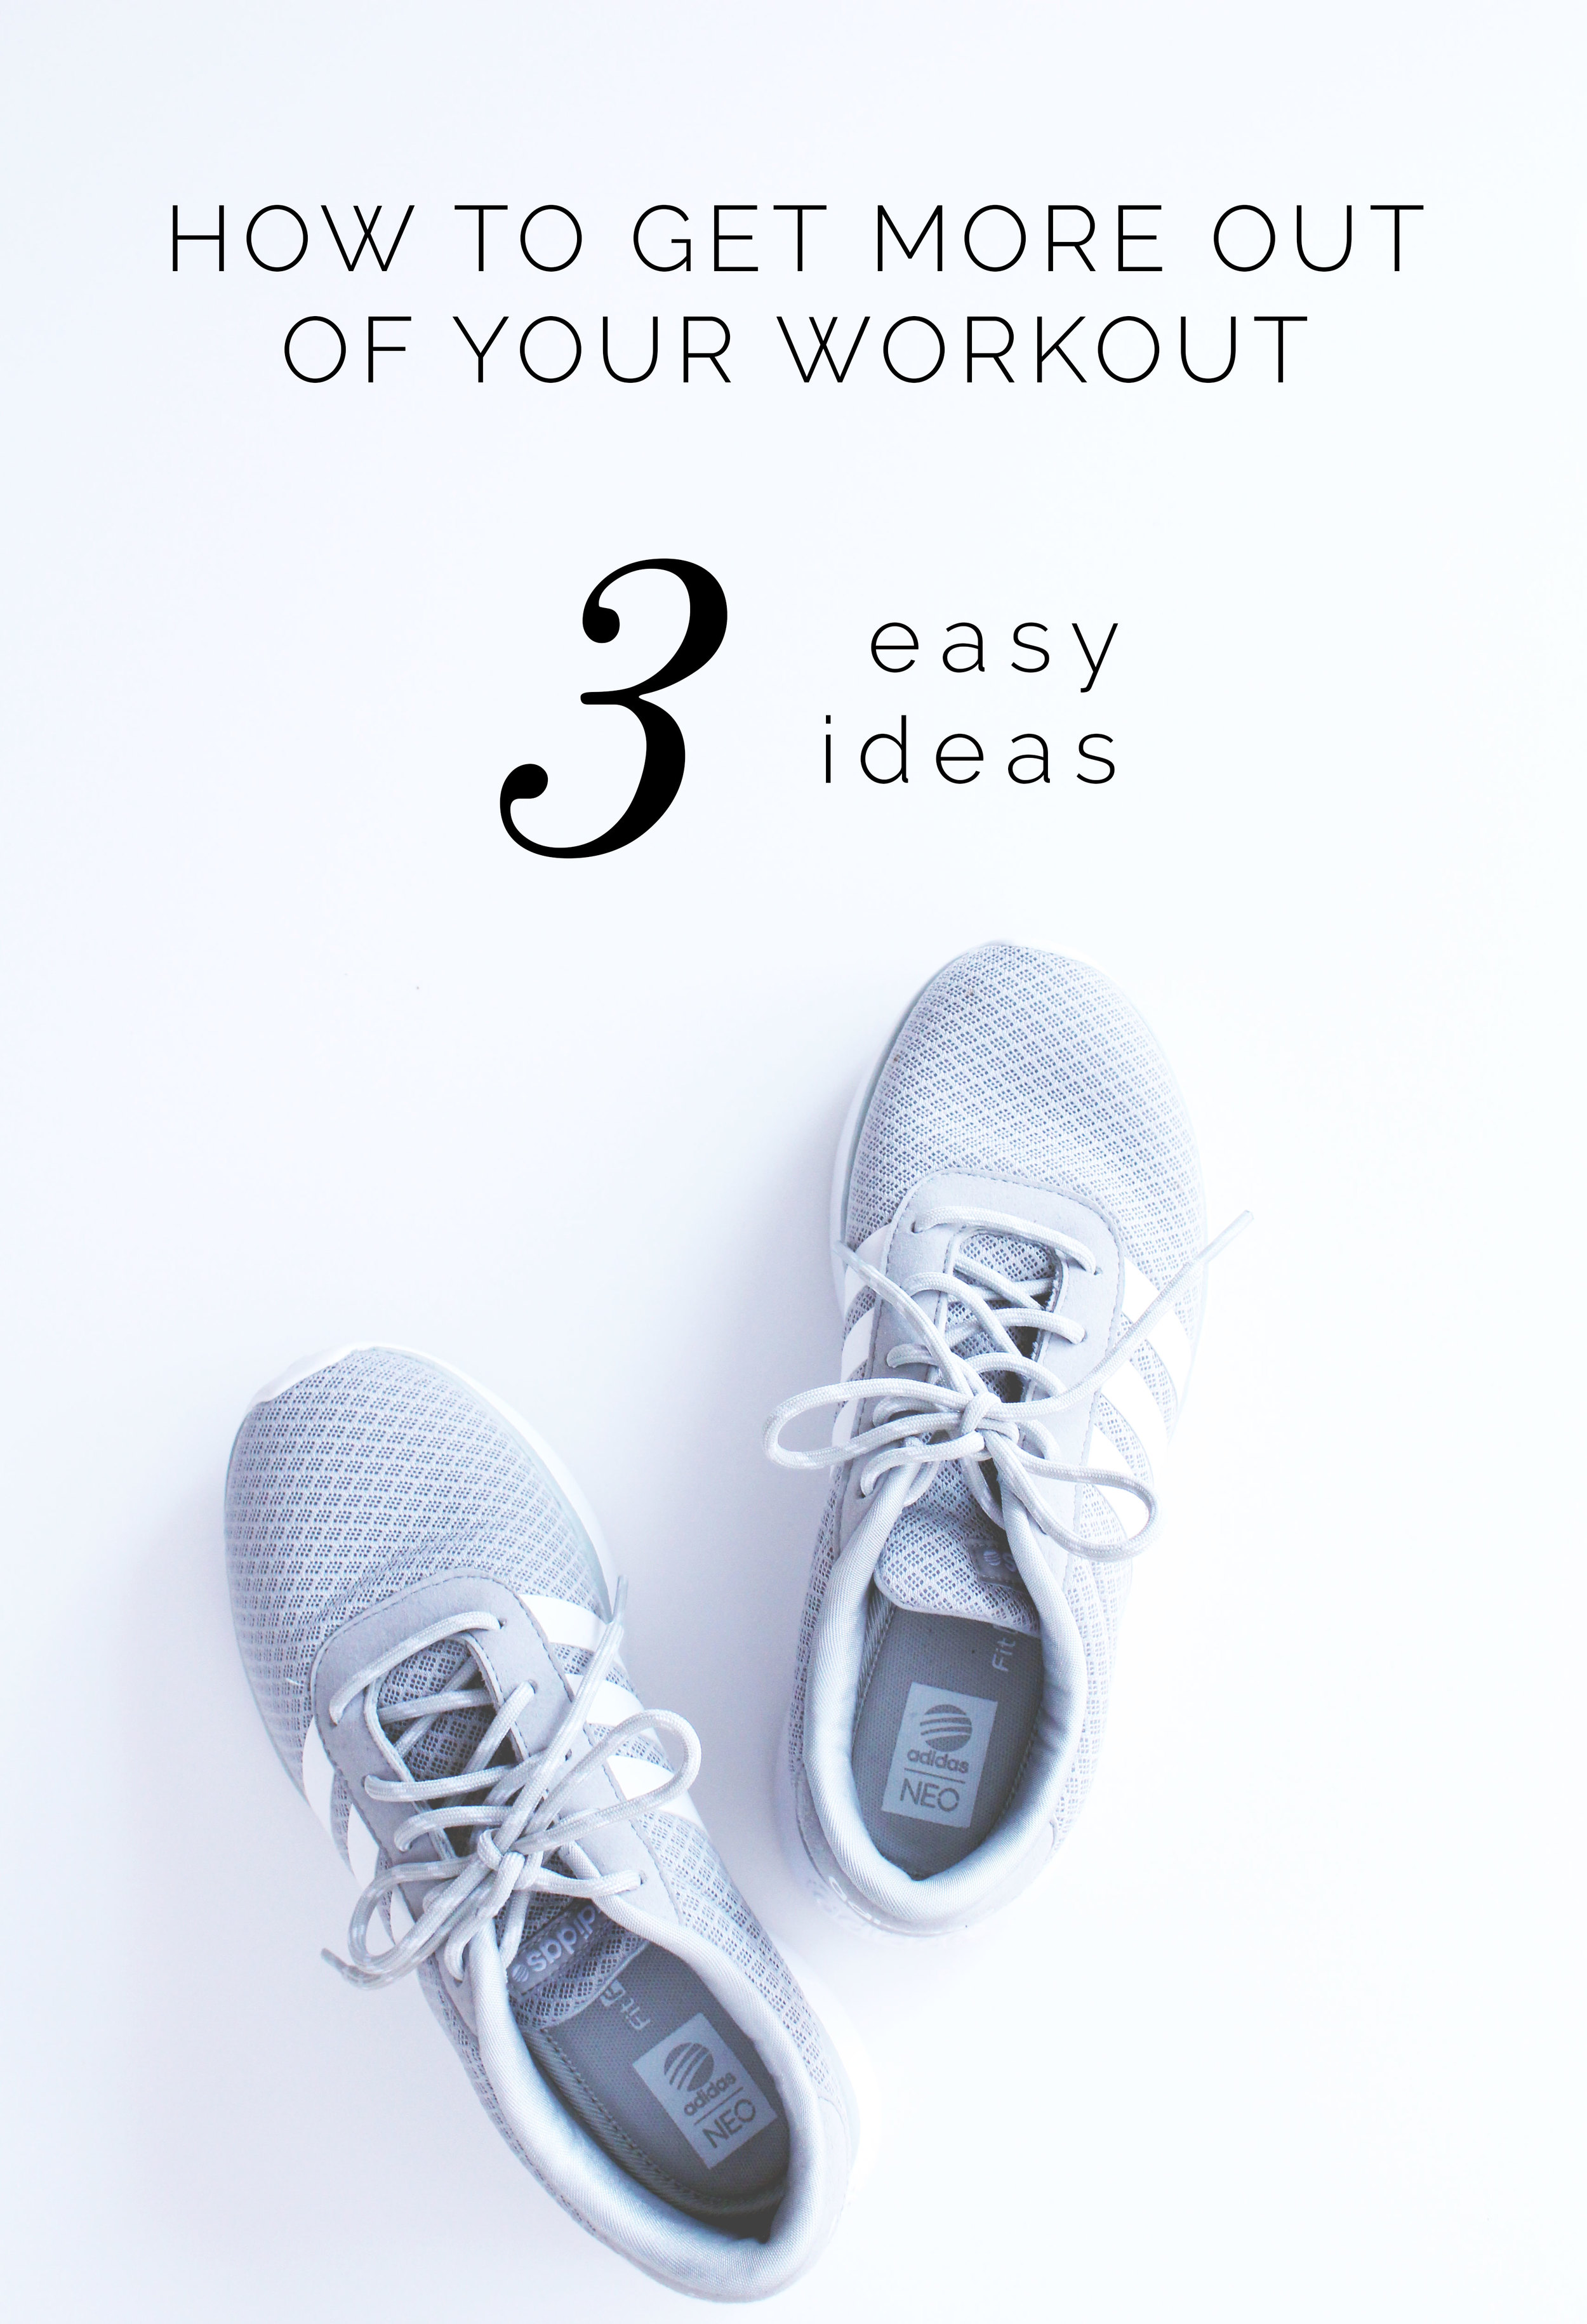 How to get more out of your workout